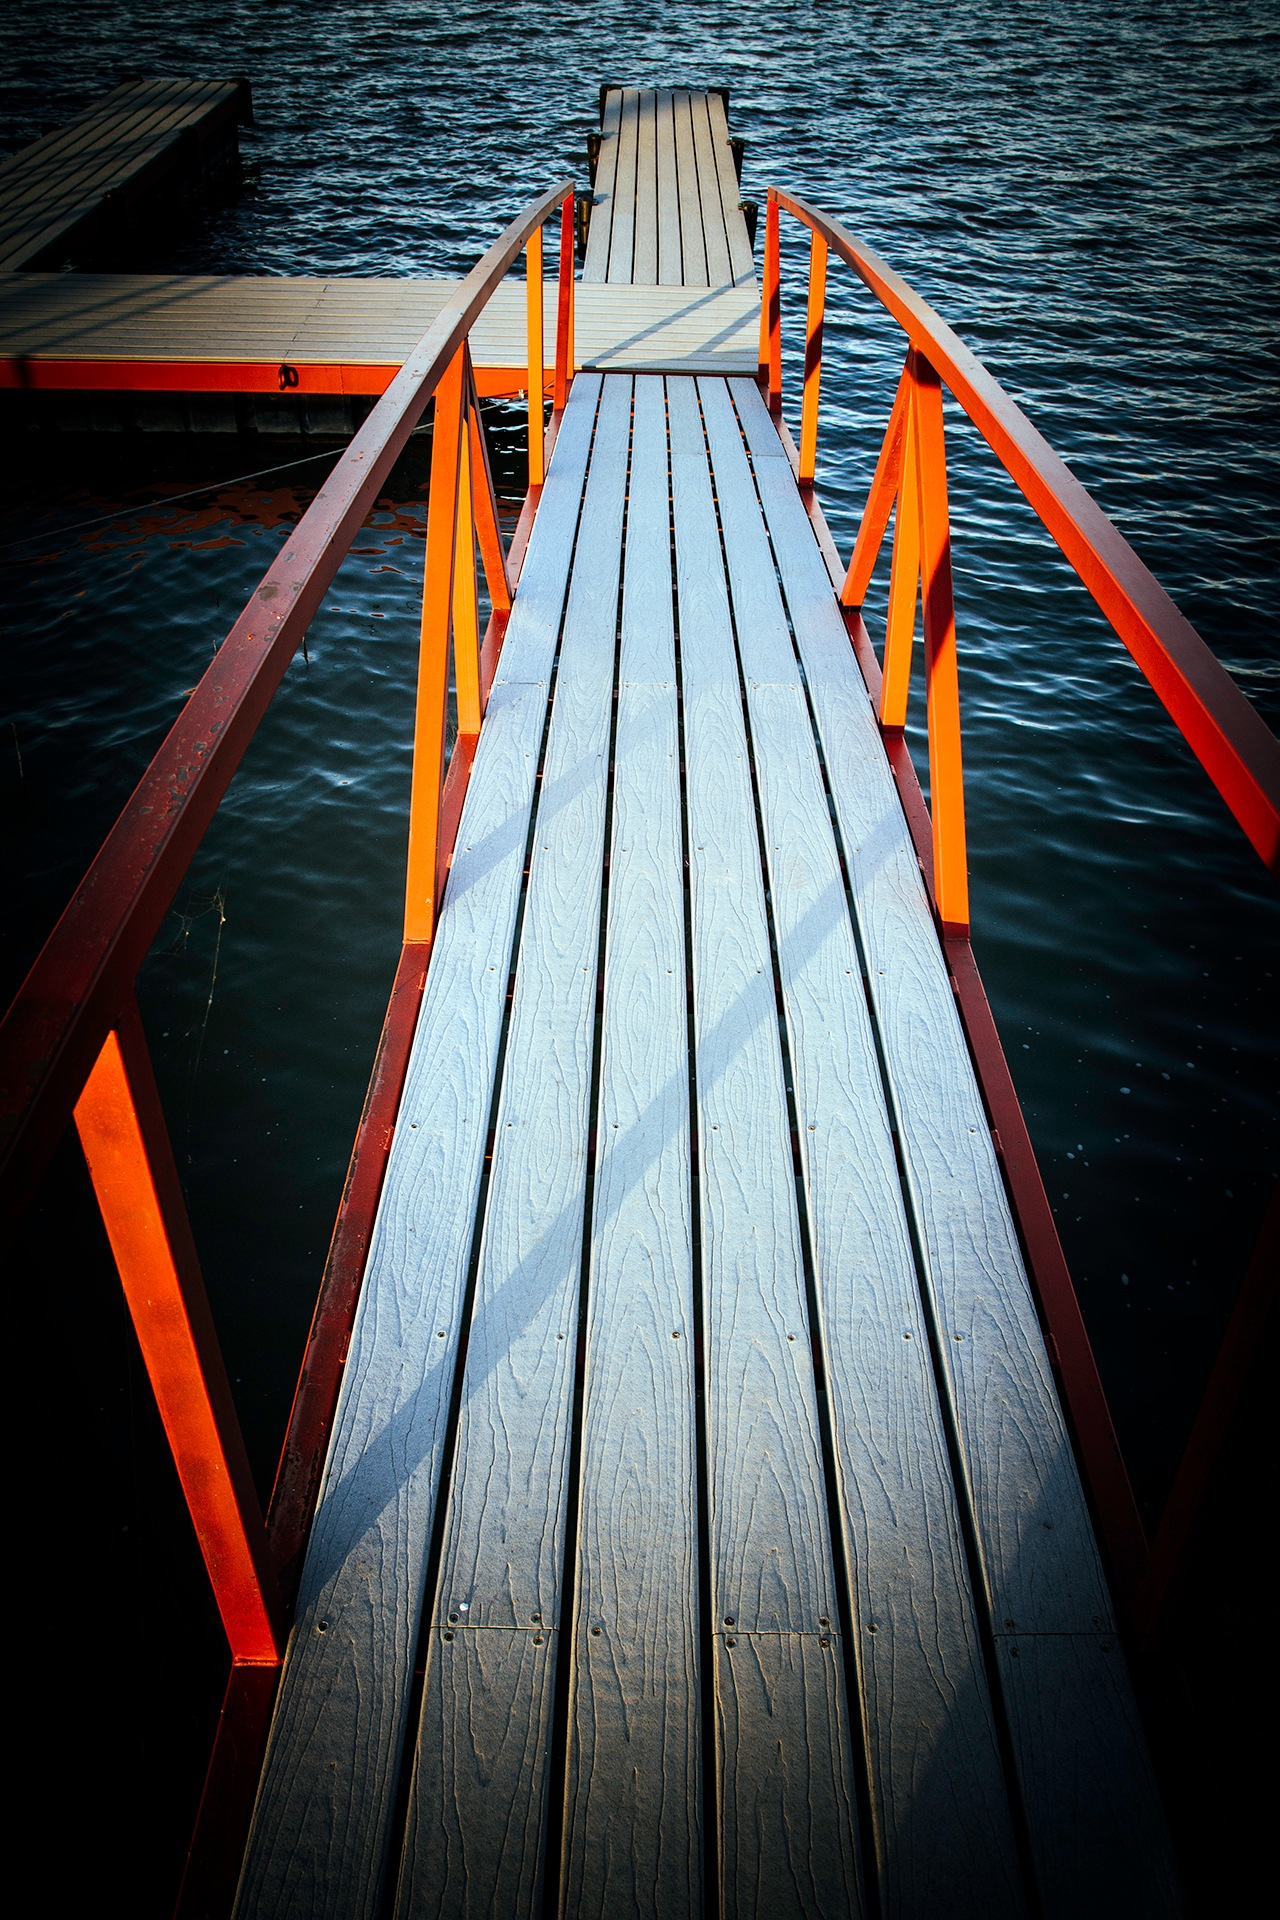 Boat Dock Walkway by Lane L Gibson